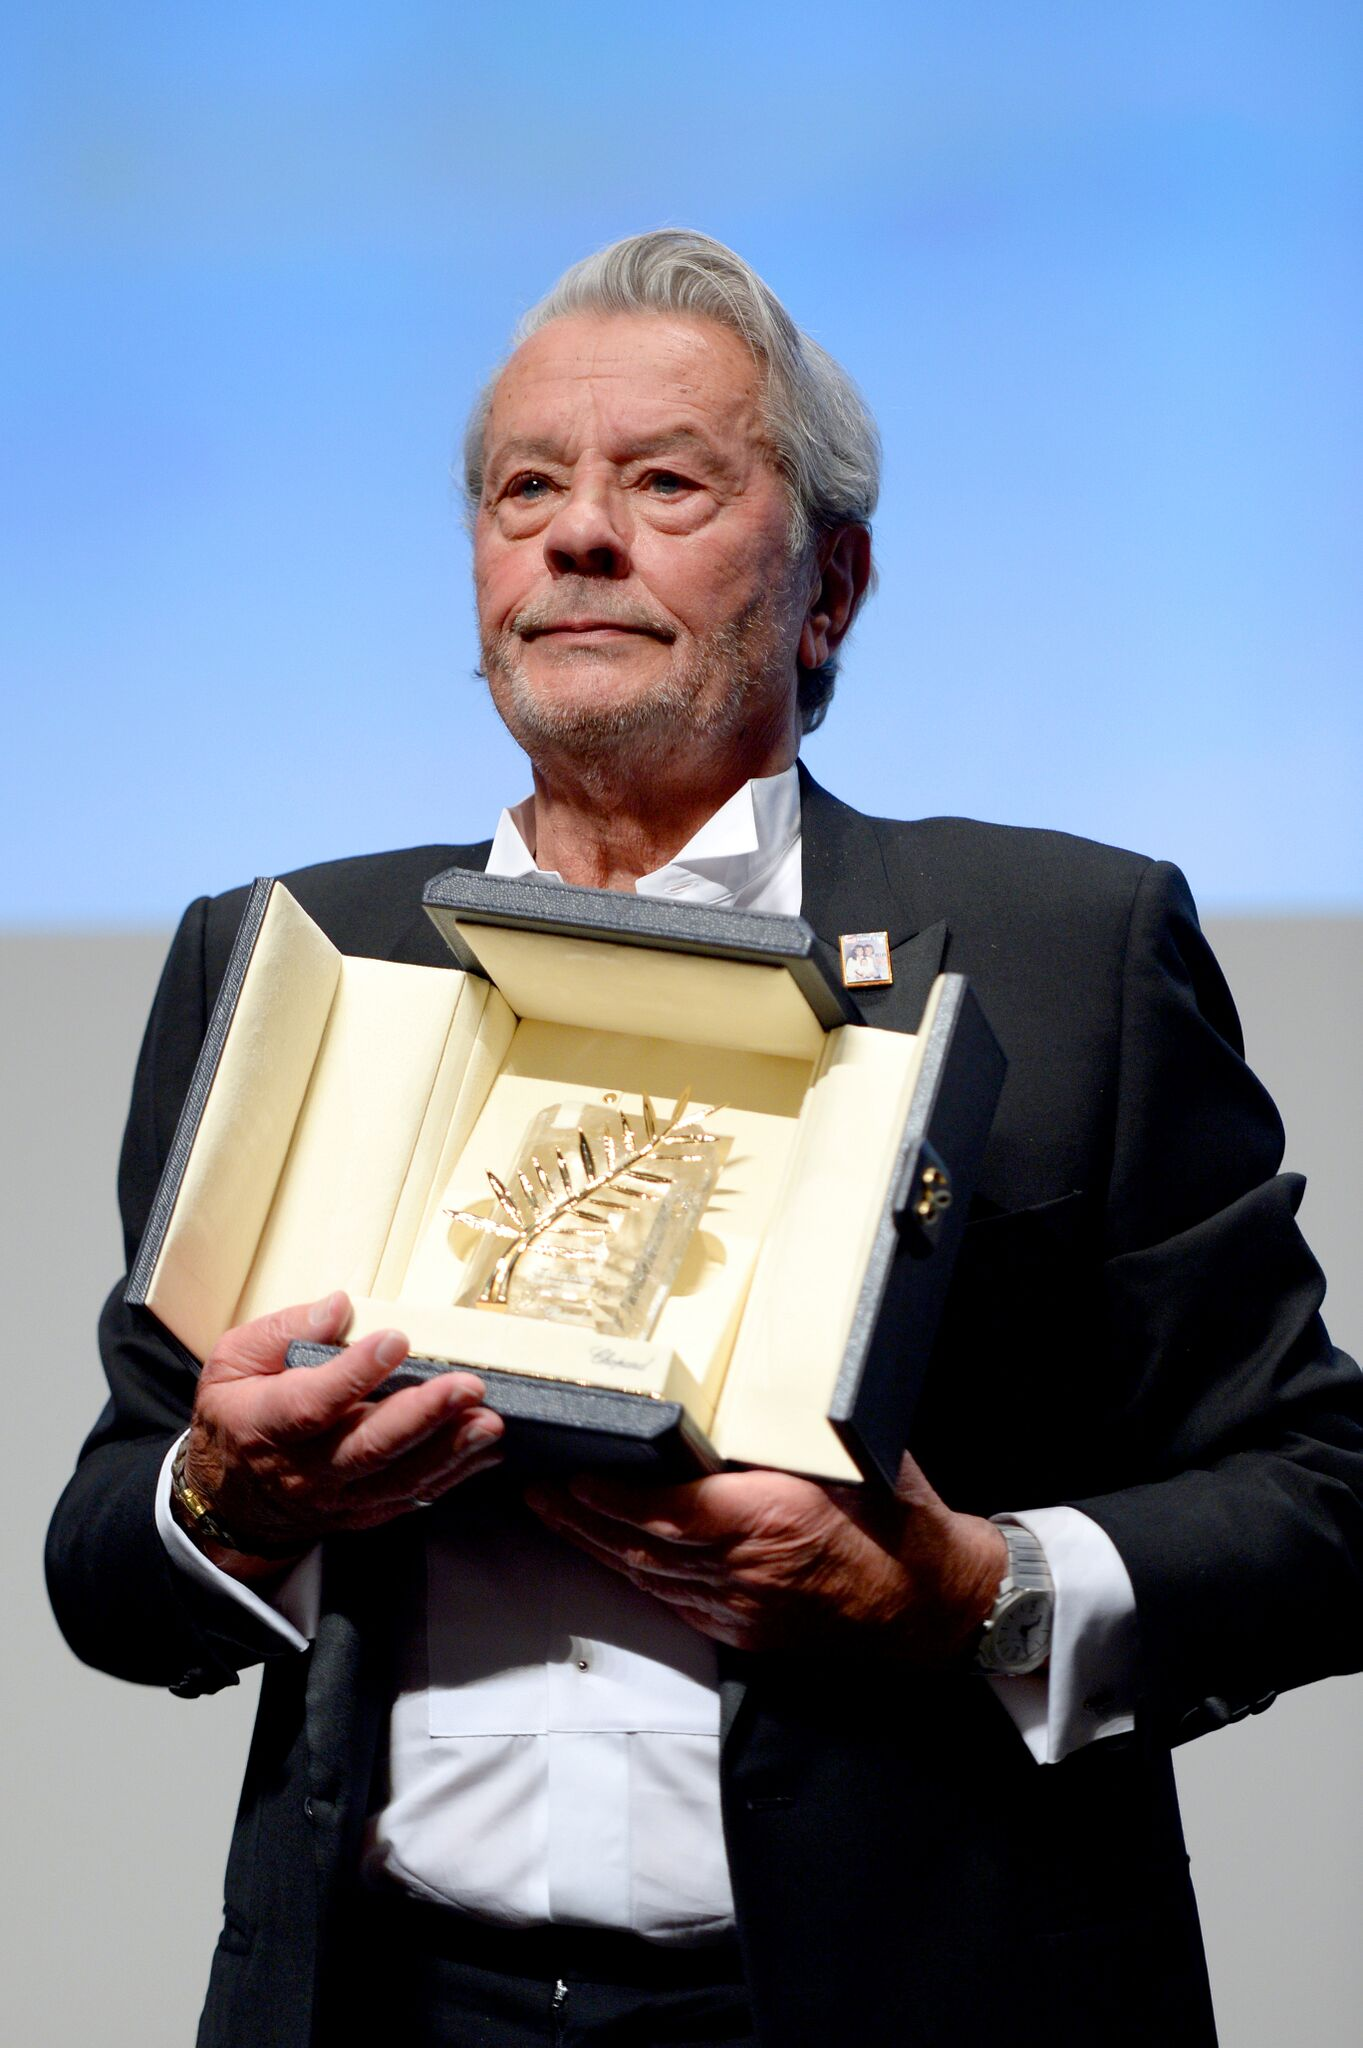 Alain Delon et sa Palme d'honneur. l Source : Getty Images